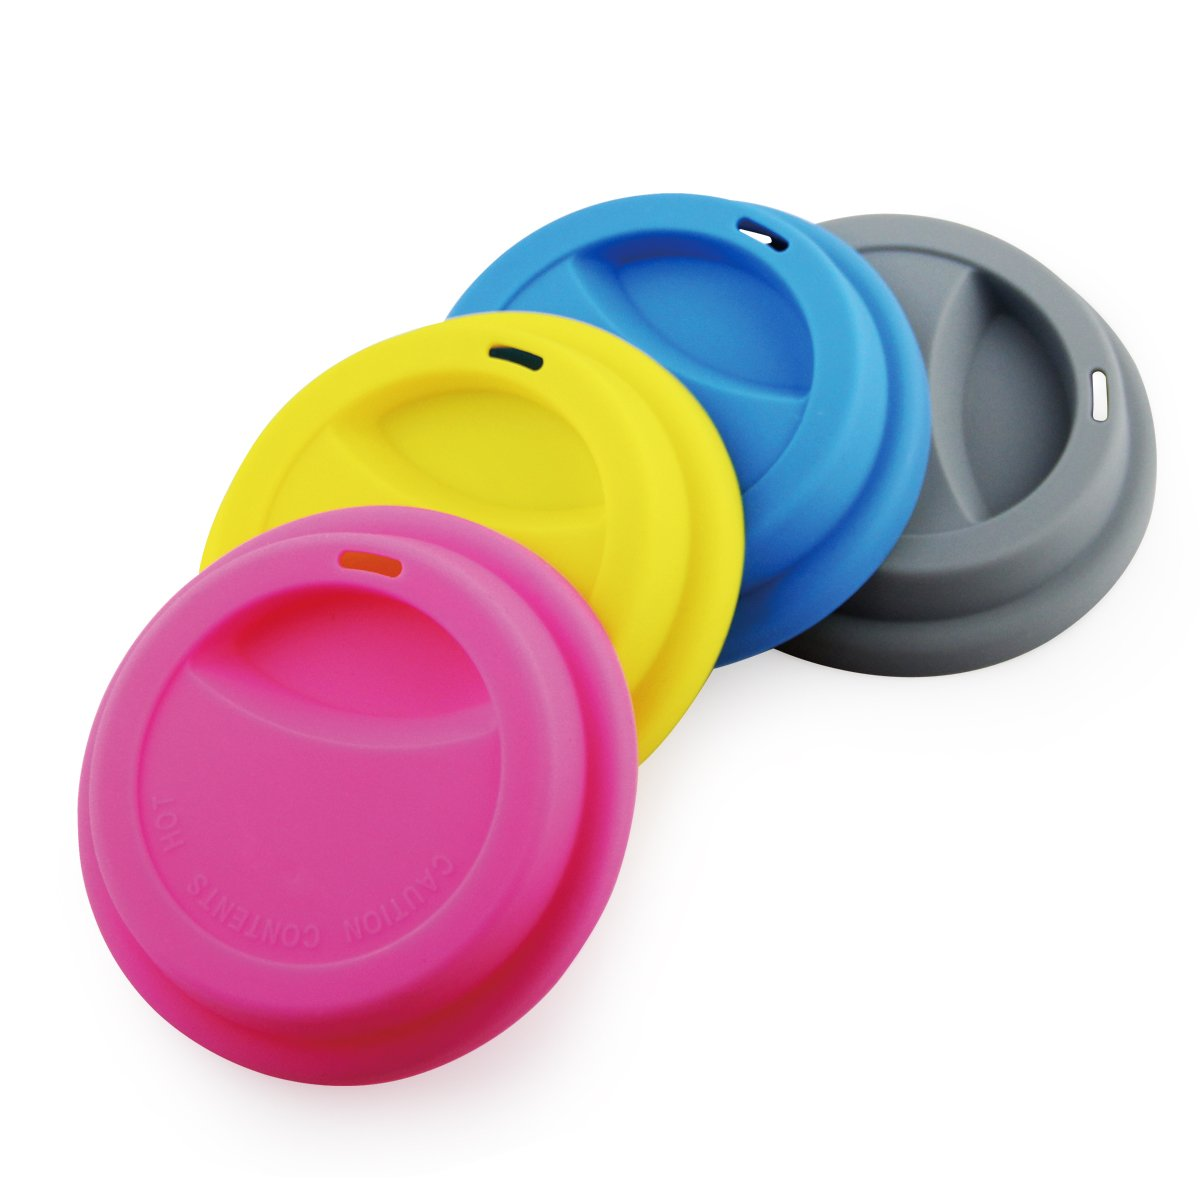 Yilove Replacement Silicone Mug Lids(4 Pack)-Pink Yellow Blue Grey